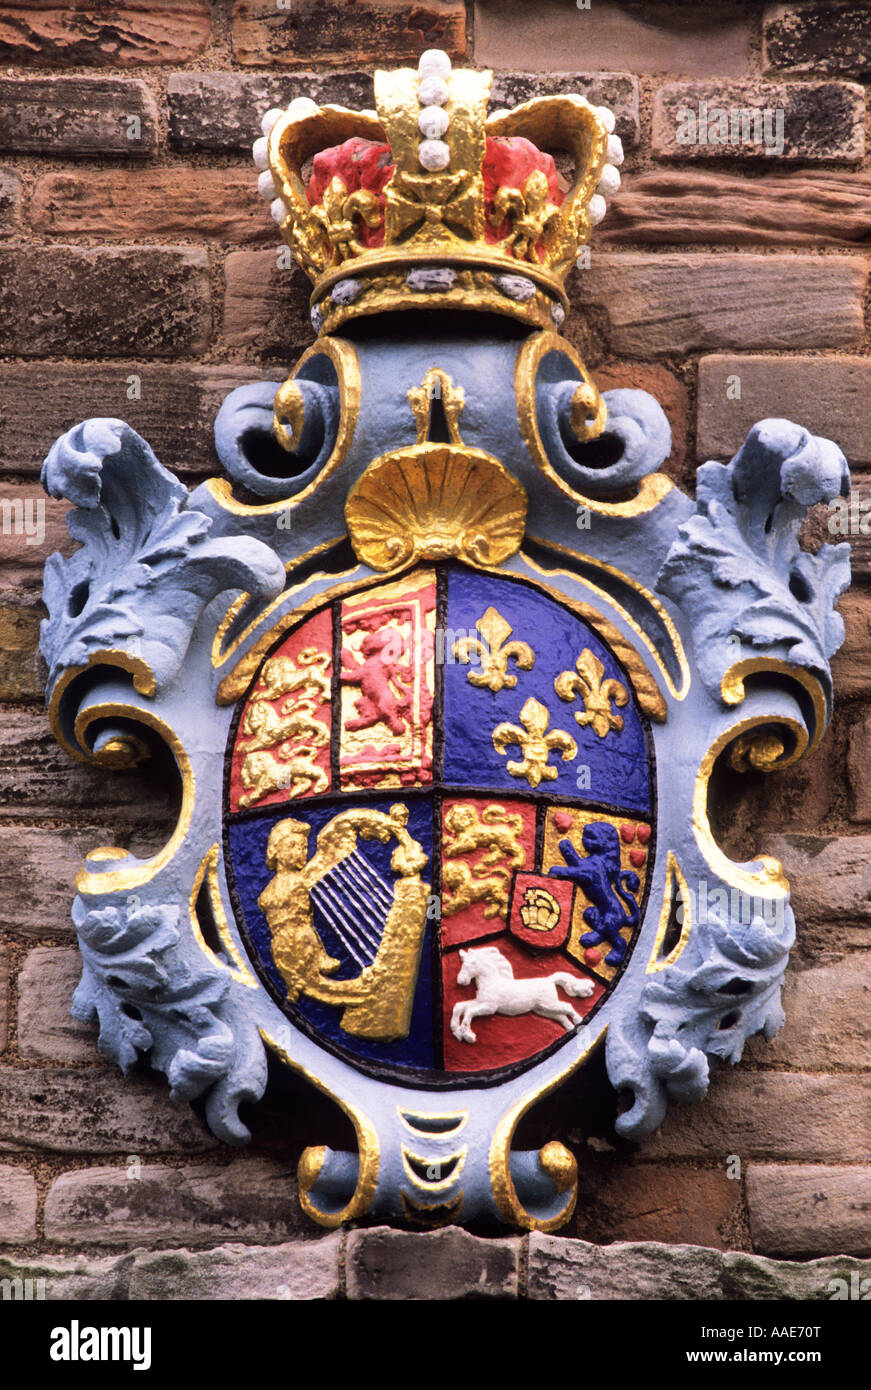 berwick barracks arms of king george 1st northumberland england berwick barracks arms of king george 1st northumberland england uk history english royalty royal coat of arms heraldry